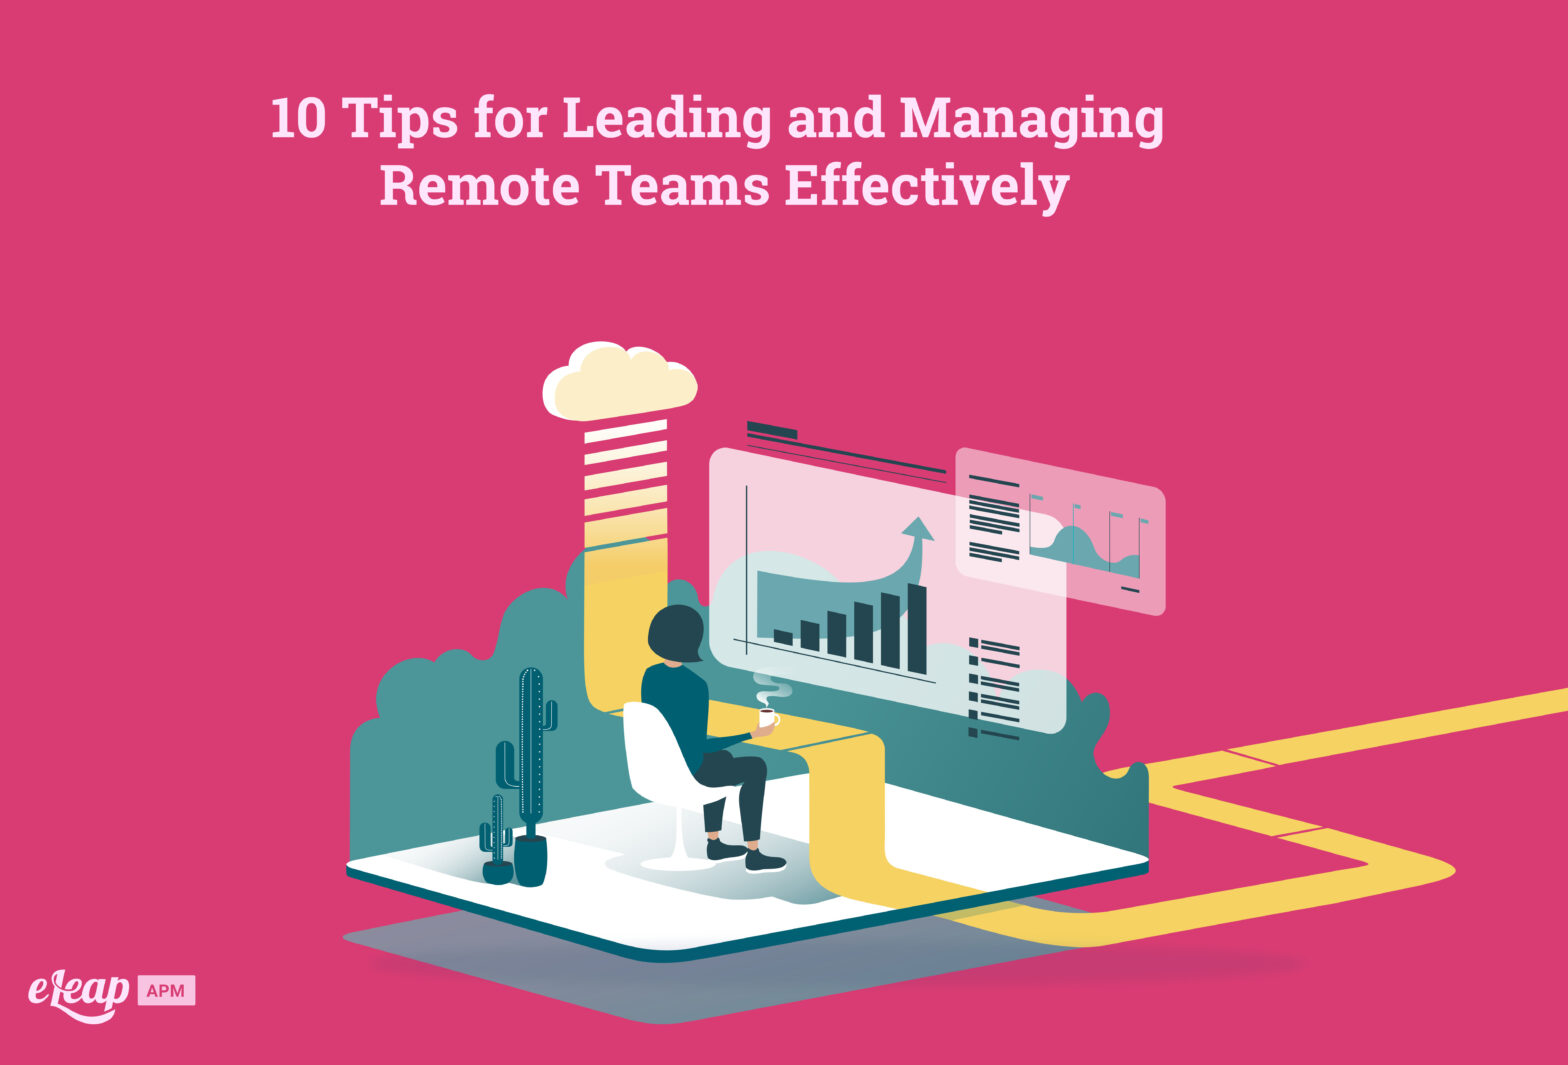 10 Tips for Leading and Managing Remote Teams Effectively